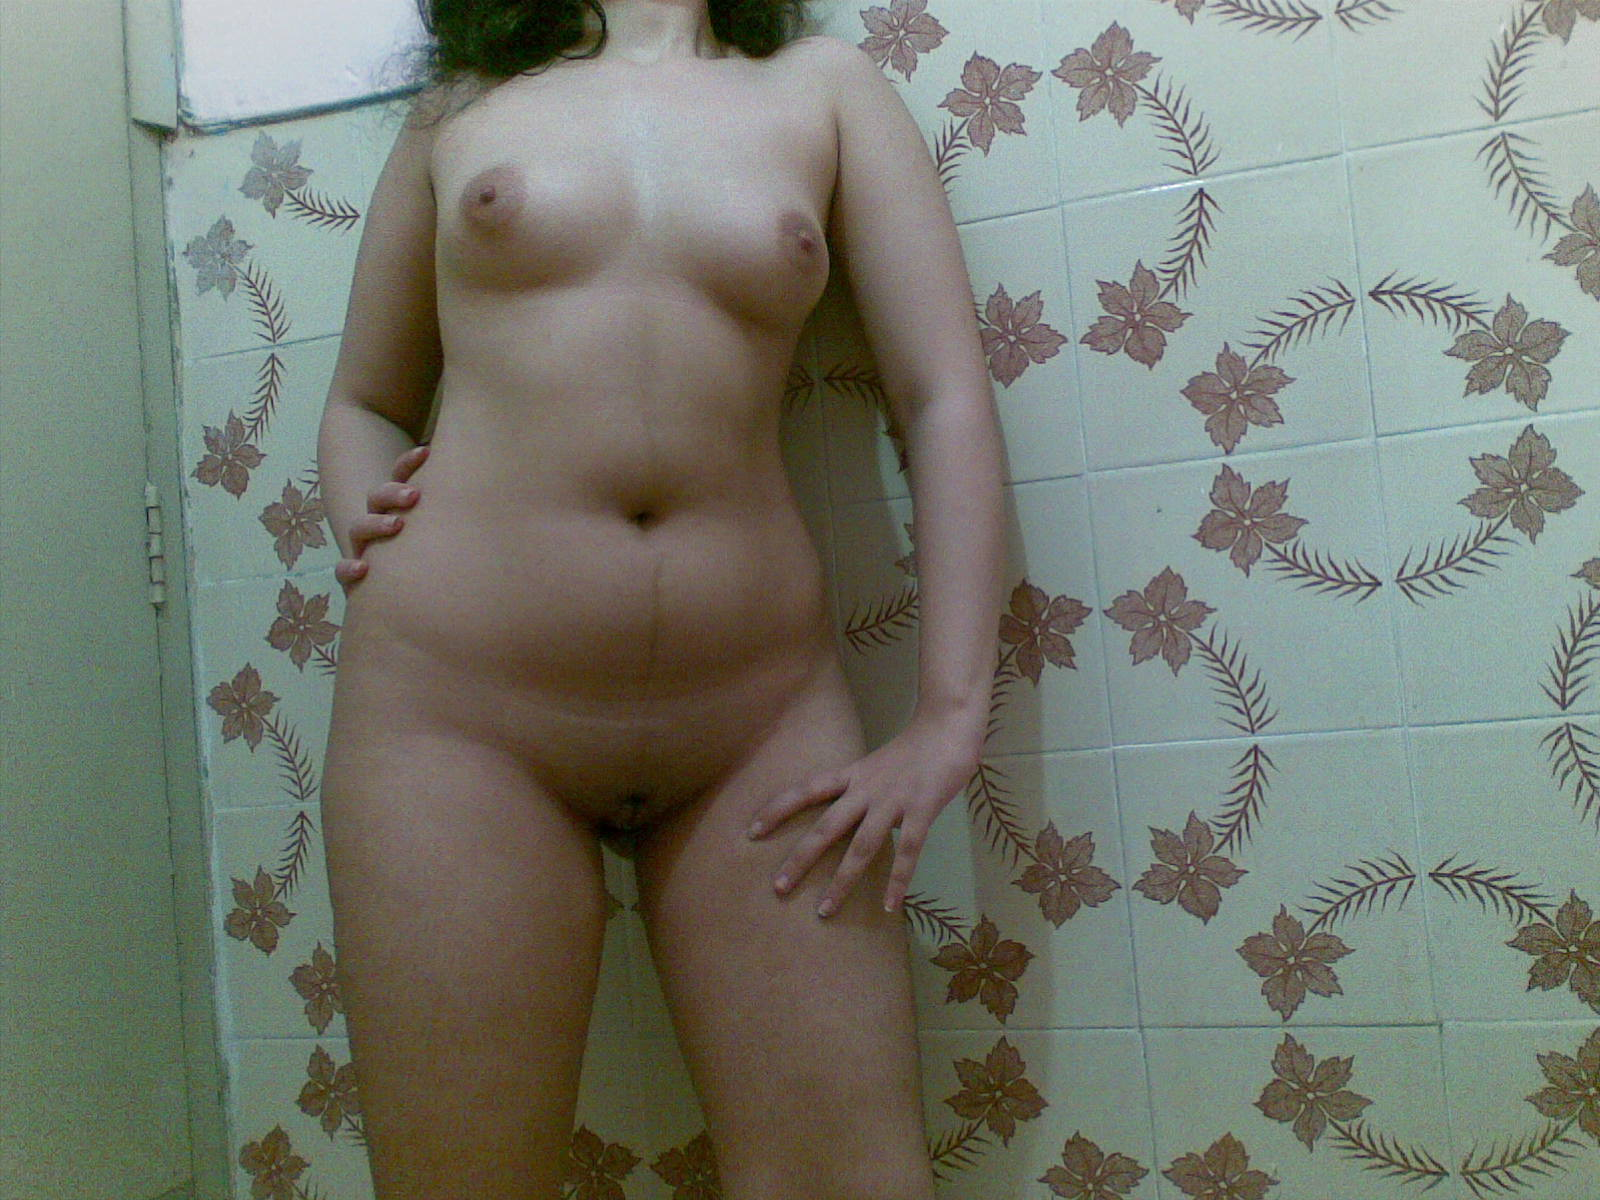 nudist in indiani pics jpg 422x640